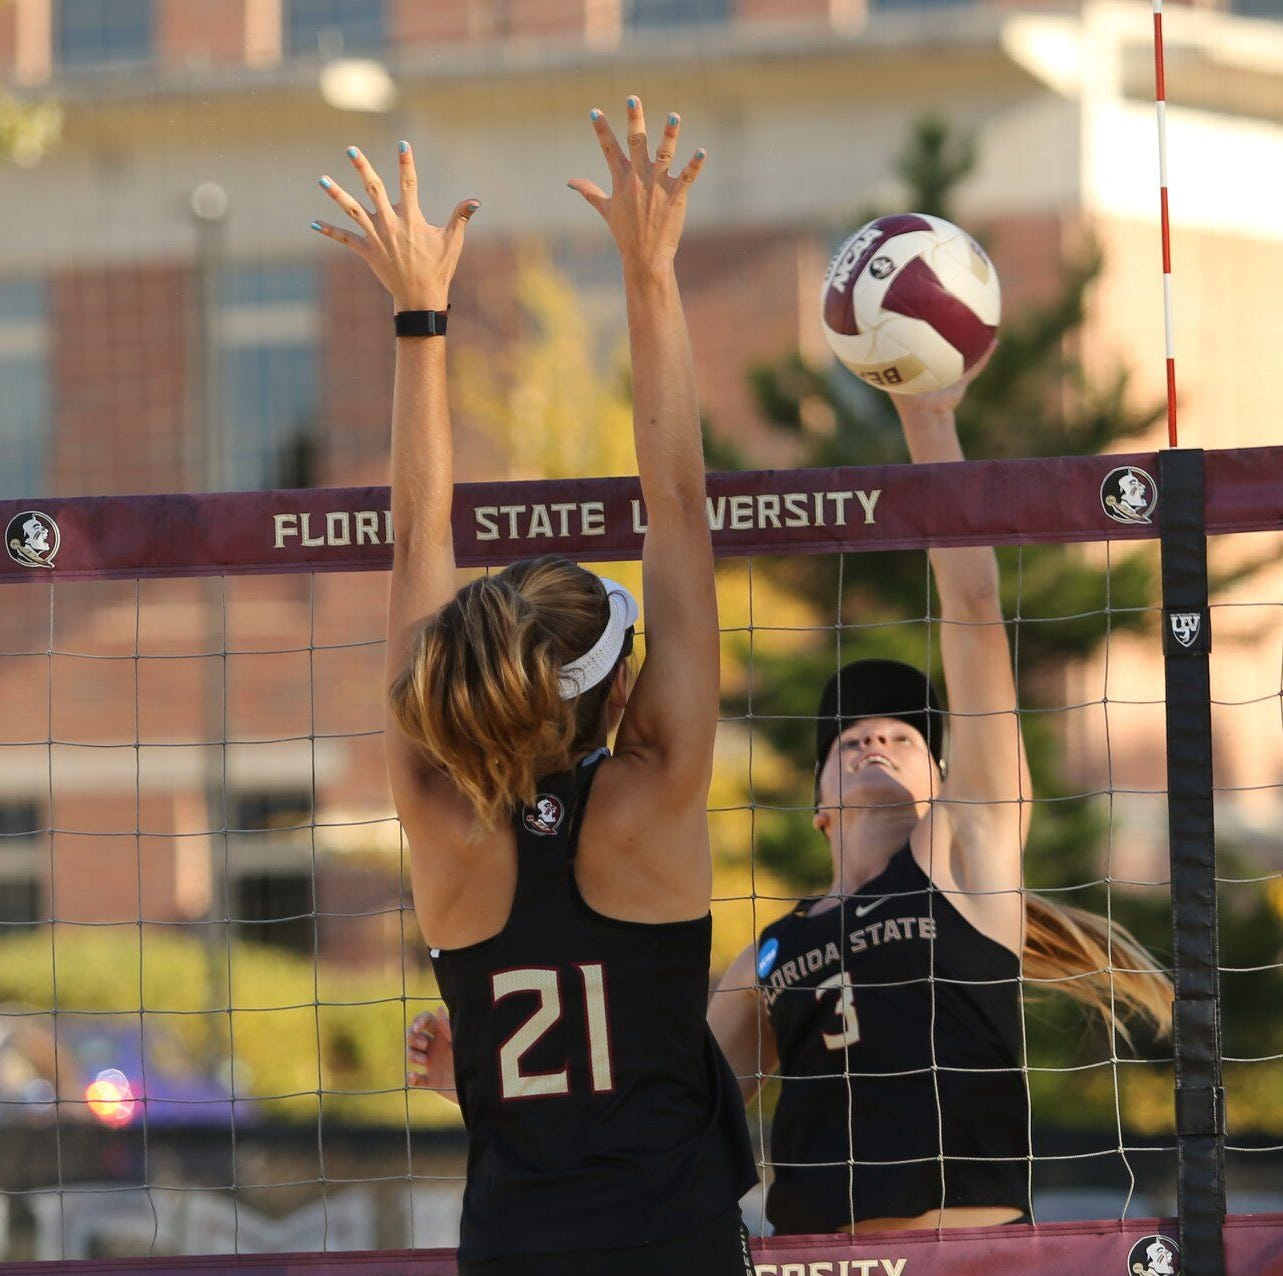 New-look Florida State opening season at home for first time in program history